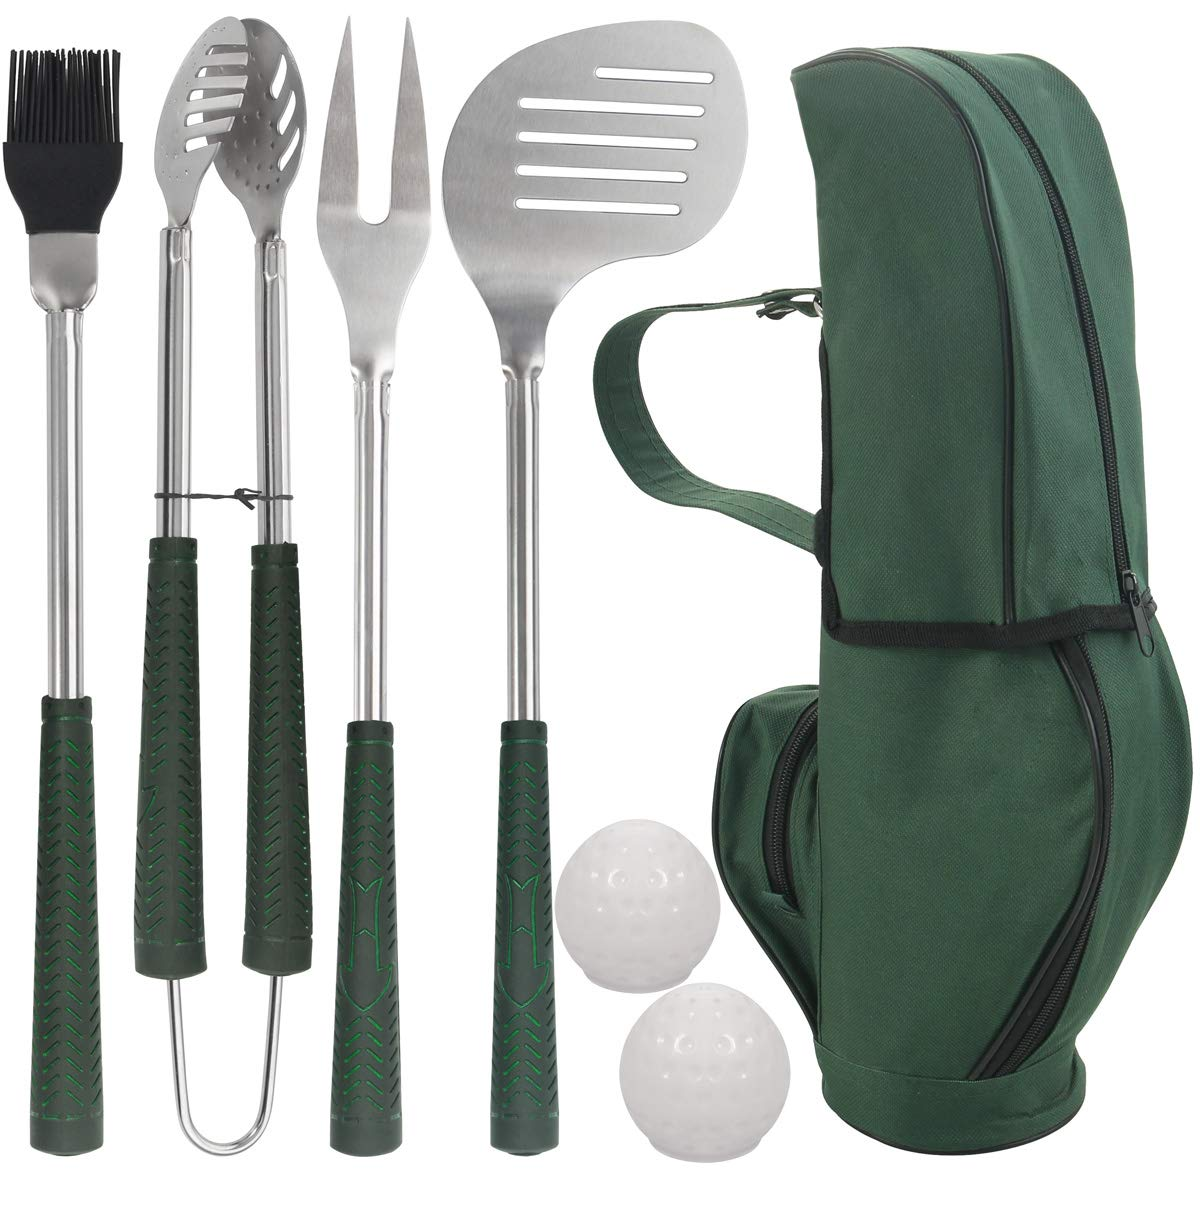 POLIGO 7pcs Golf-Club Style BBQ Grill Tool Set - Stainless Steel Grill Accessories in Golf-Club Style Bag for Camping - Premium Grill Utensils Ideal Birthday Fathers Day Grilling Gifts for Men Dad